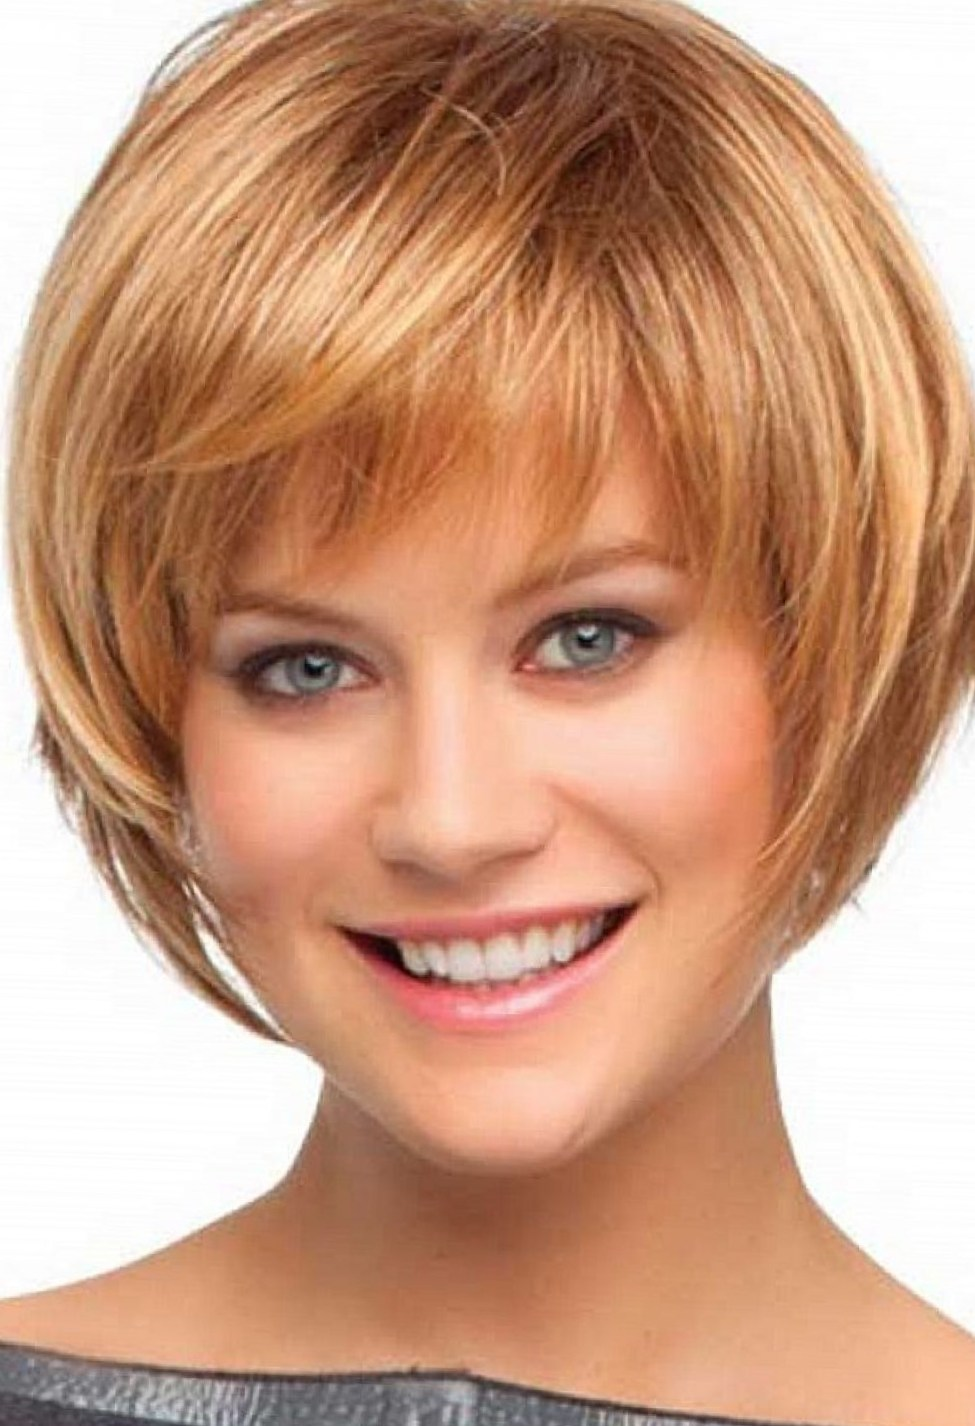 Tremendous Short Bob Hairstyles With Bangs 4 Perfect Ideas For You Talk Hairstyles For Men Maxibearus